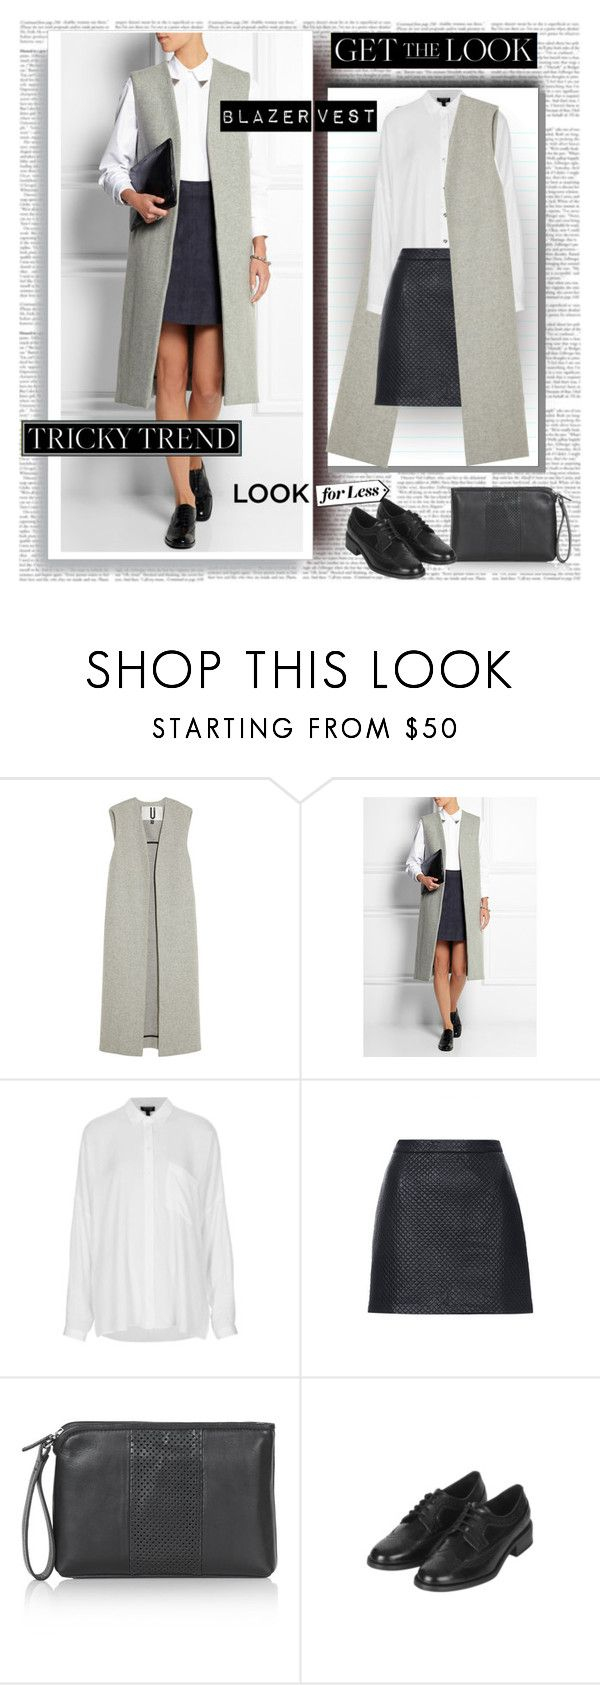 """Blazer Vest Tricky Trend"" by stylepersonal ❤ liked on Polyvore featuring Topshop Unique, Topshop and blazervest"